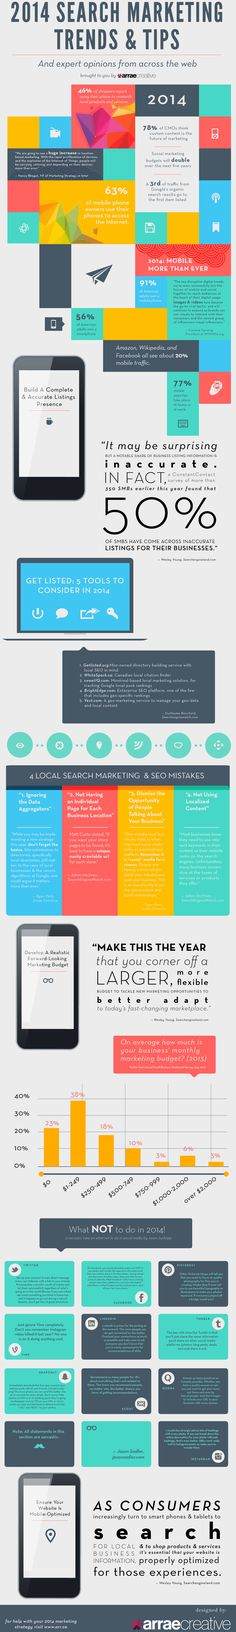 2014 Search Marketing Trends - Online #Marketing #Trends And Tips  #infographic @La Farme / Anne-Marie